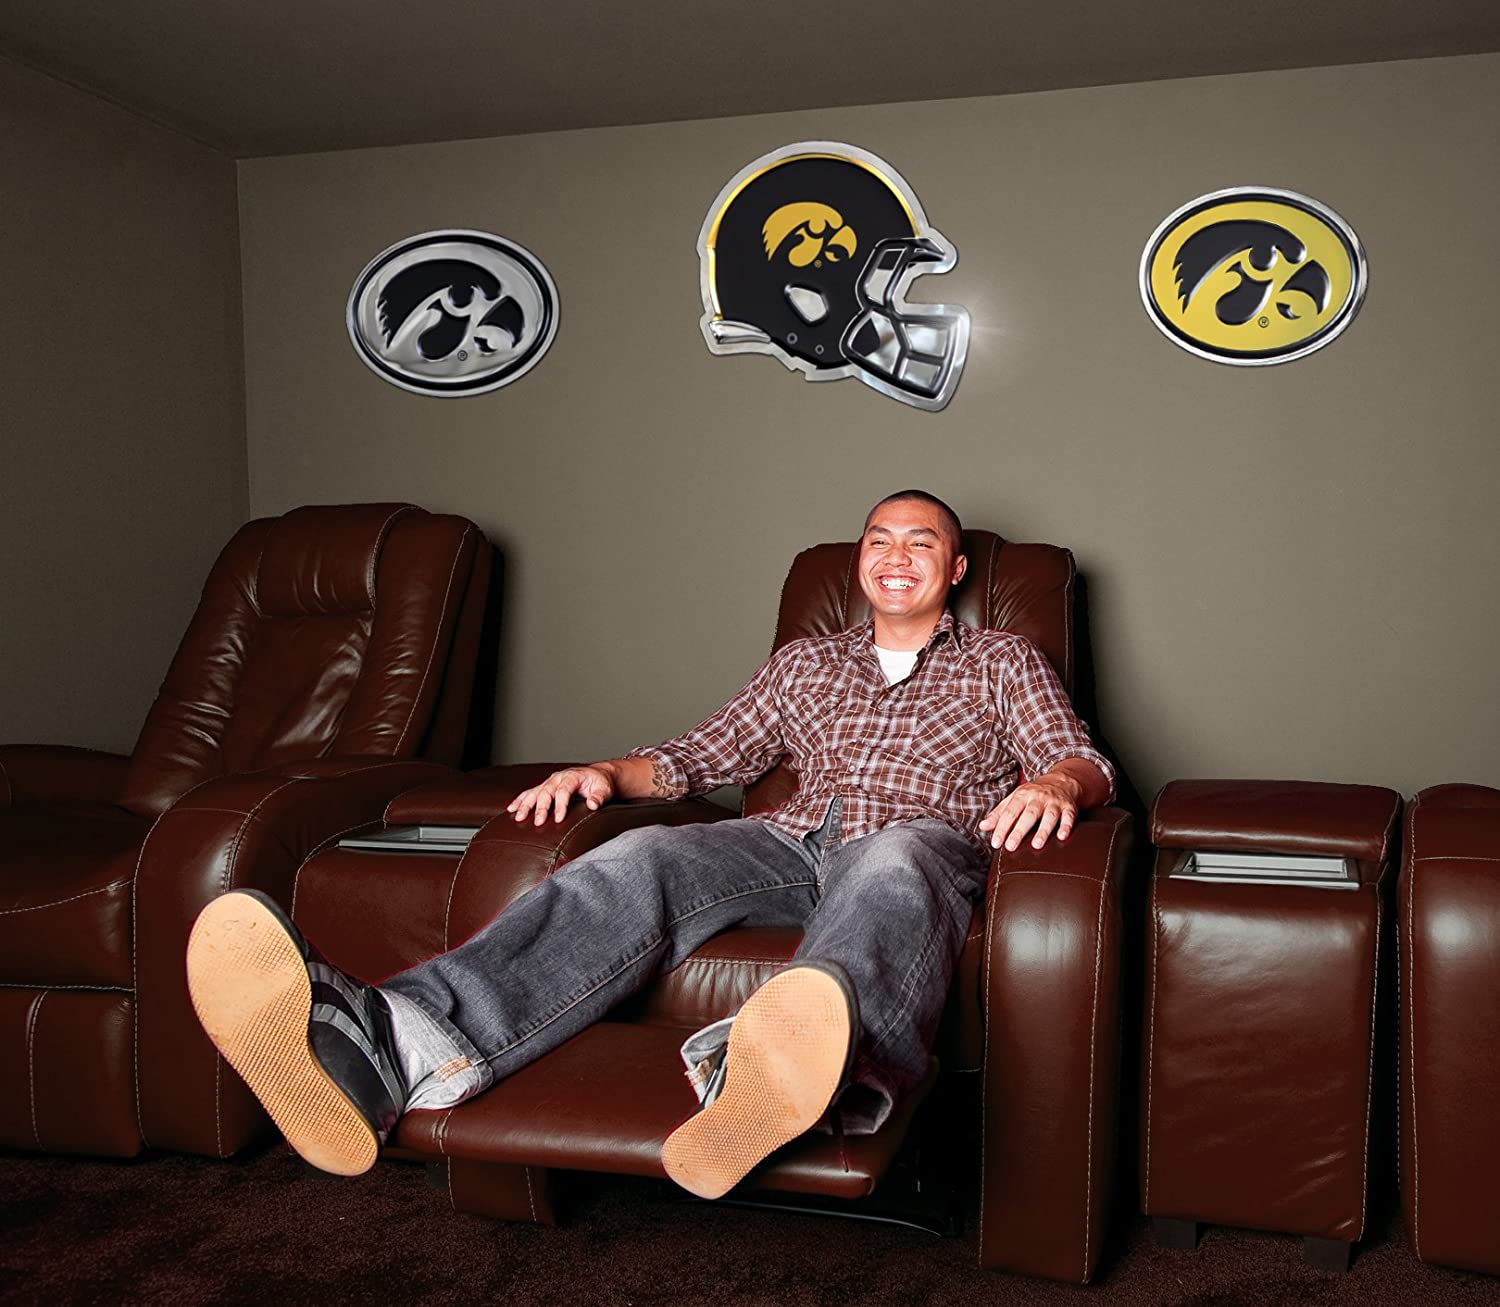 Chrome Domz NCAA Iowa Hawkeyes Oval Black and Gold Tiger Wall Art One Size Chrome Sign Made from 100/% Stainless Steel